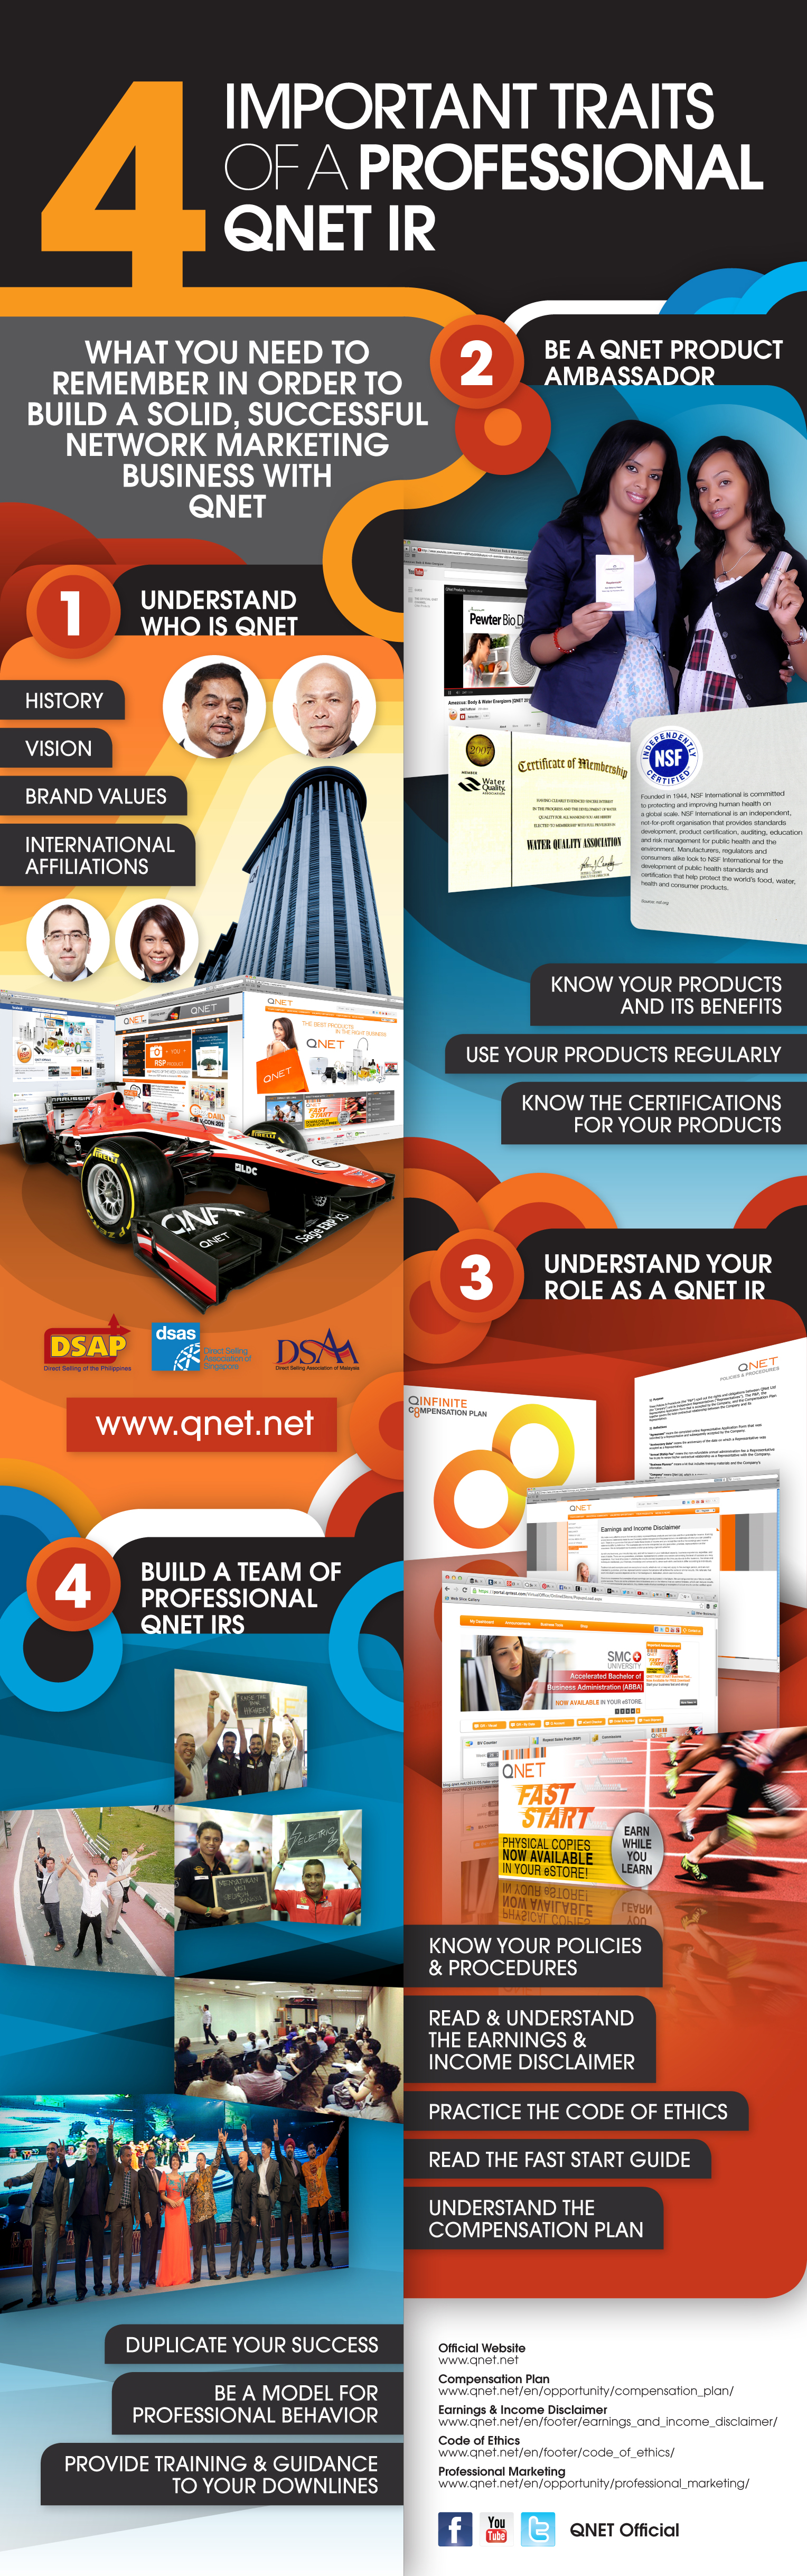 Infographic of the personality traits of a successful QNET IR